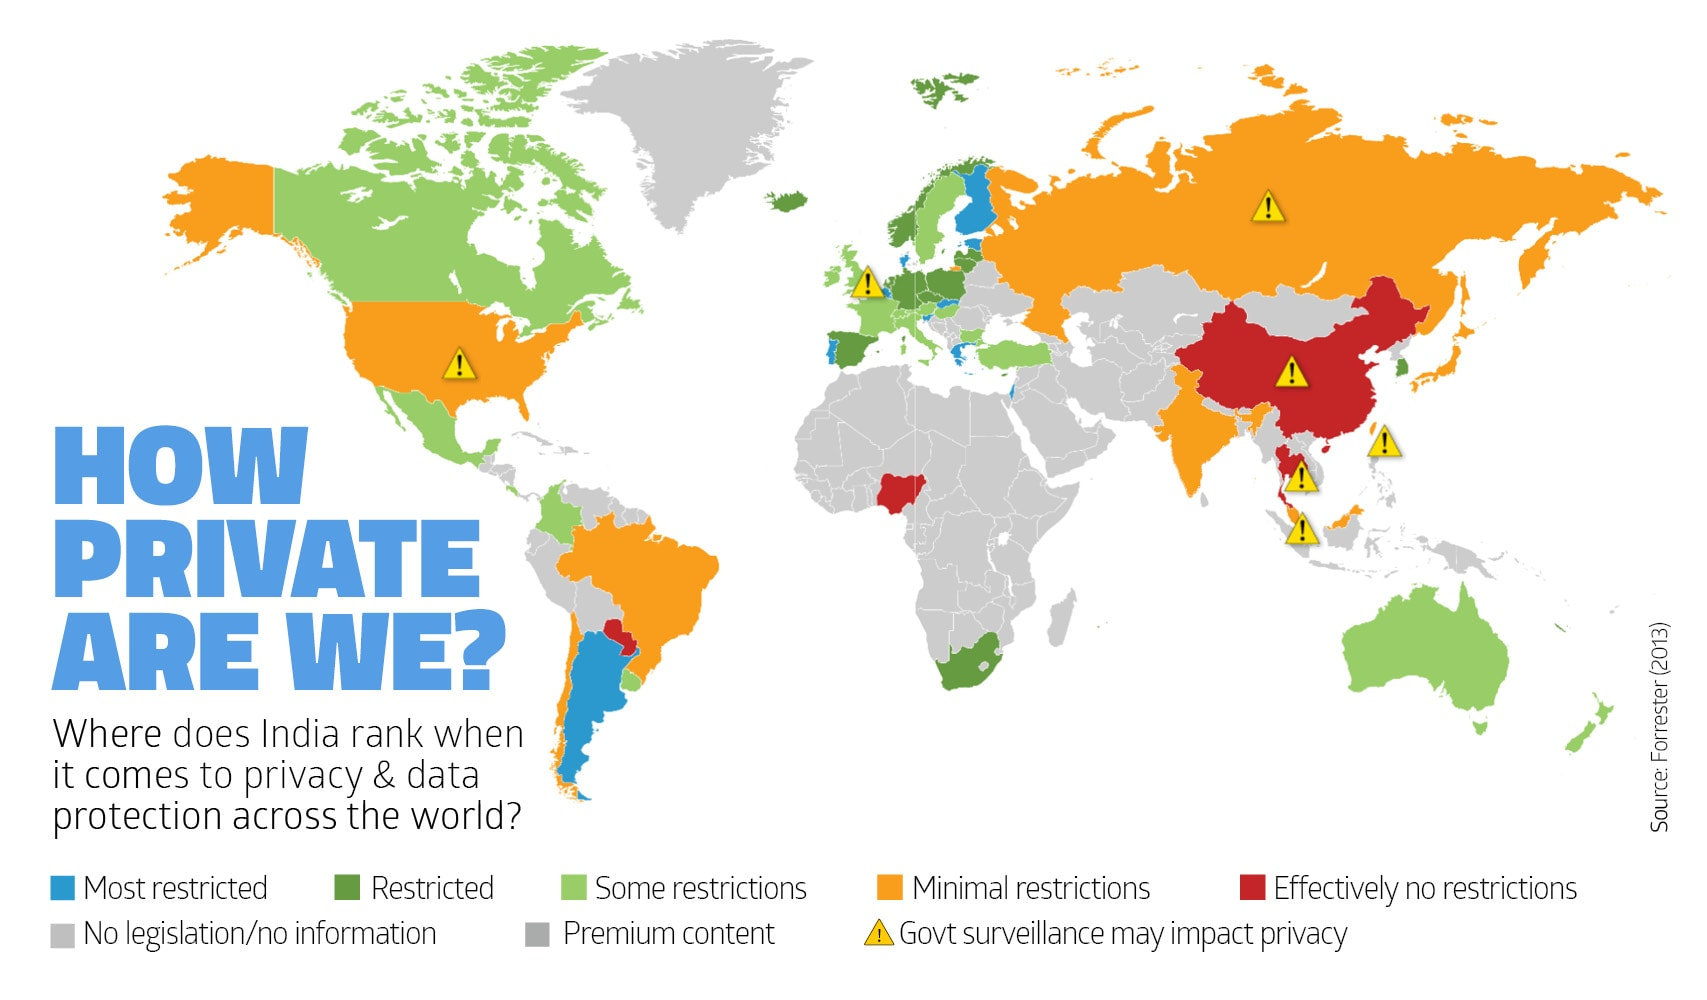 PRIVACY AND DATA PROTECTION BY COUNTRY